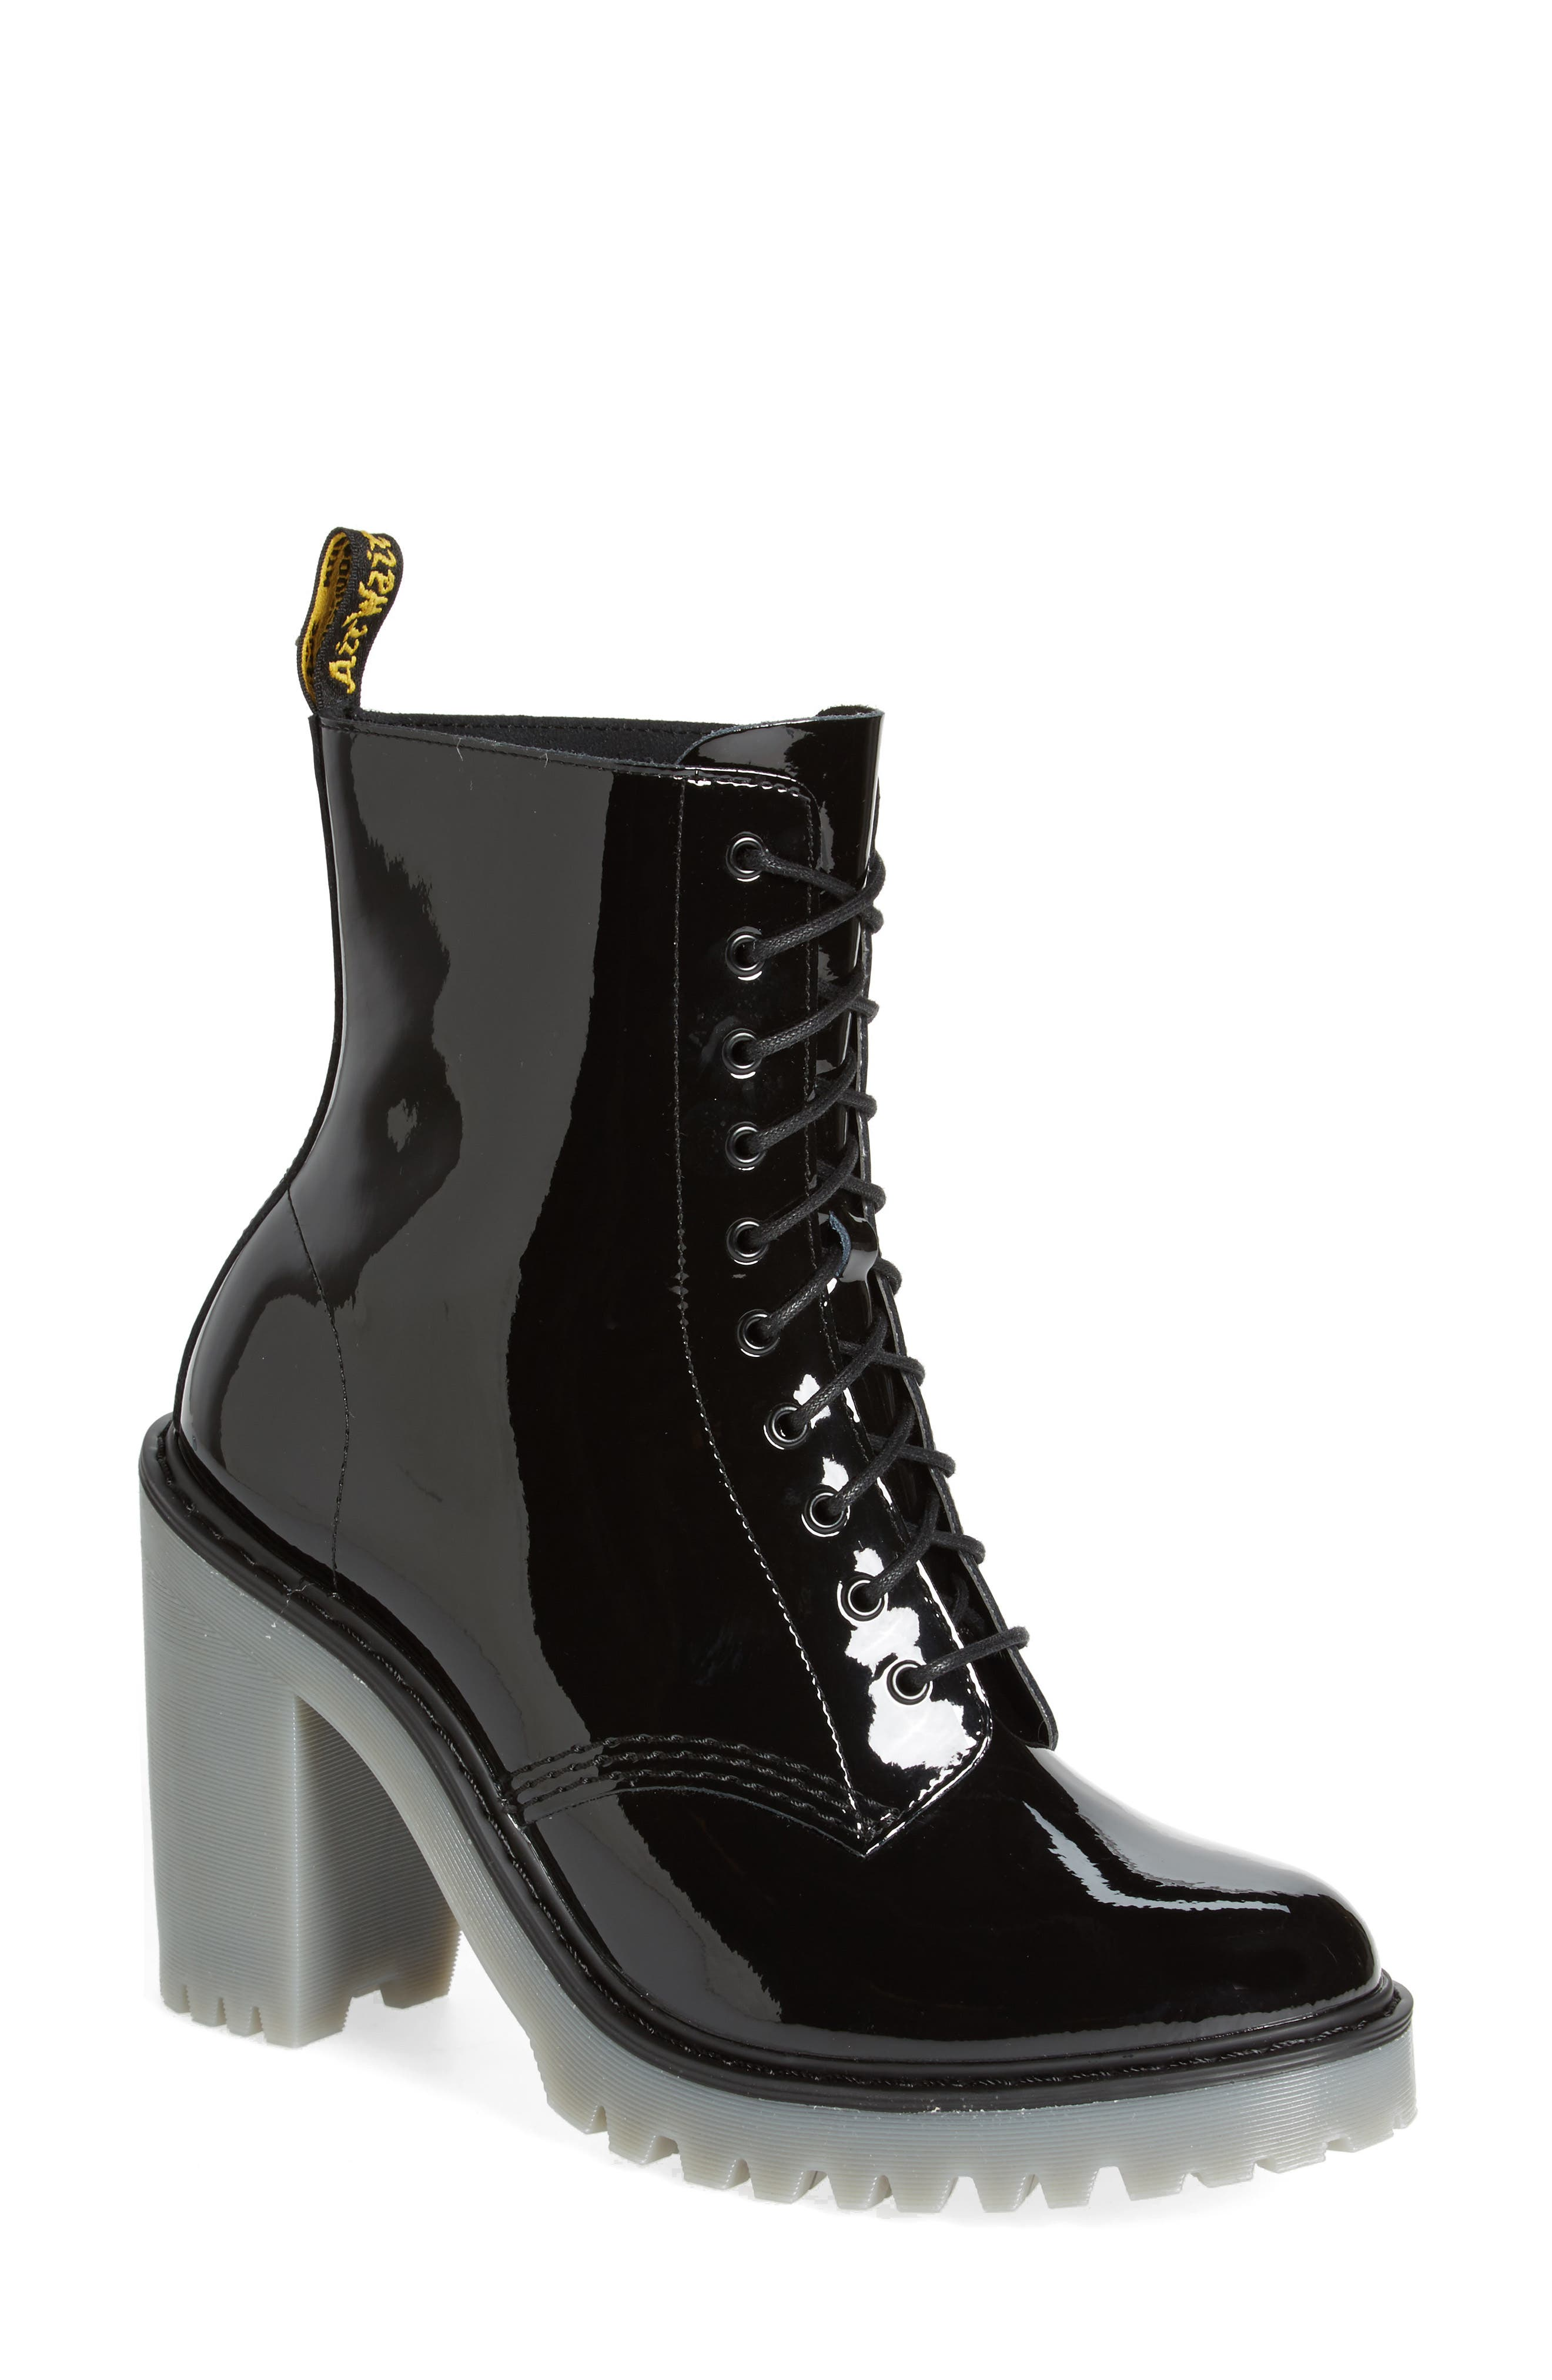 Kendra Heeled Bootie,                         Main,                         color, Black Patent Leather